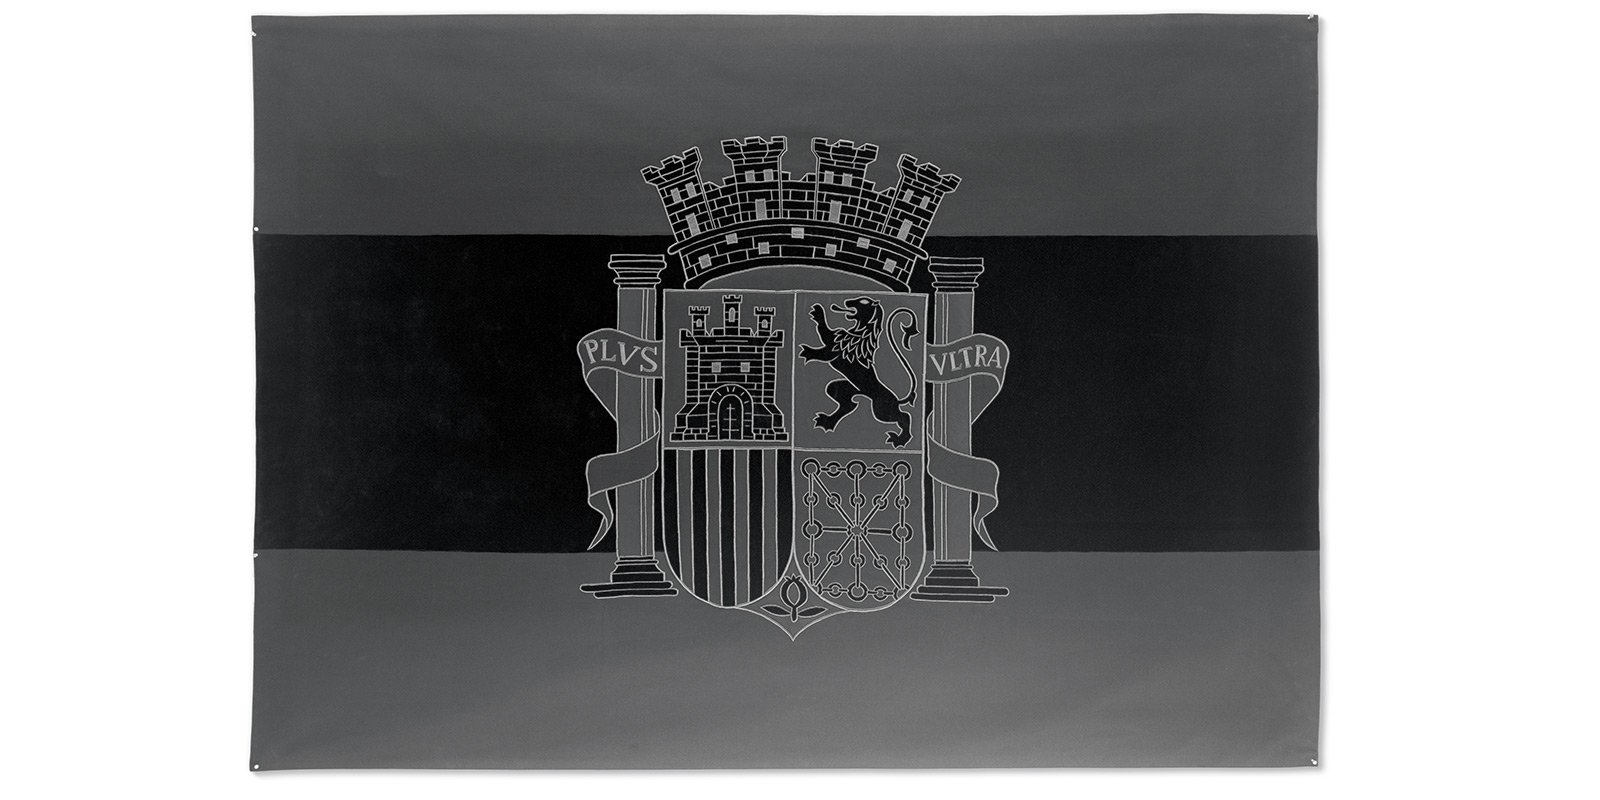 Santiago Sierra, Black Flag of the Spanish Republic